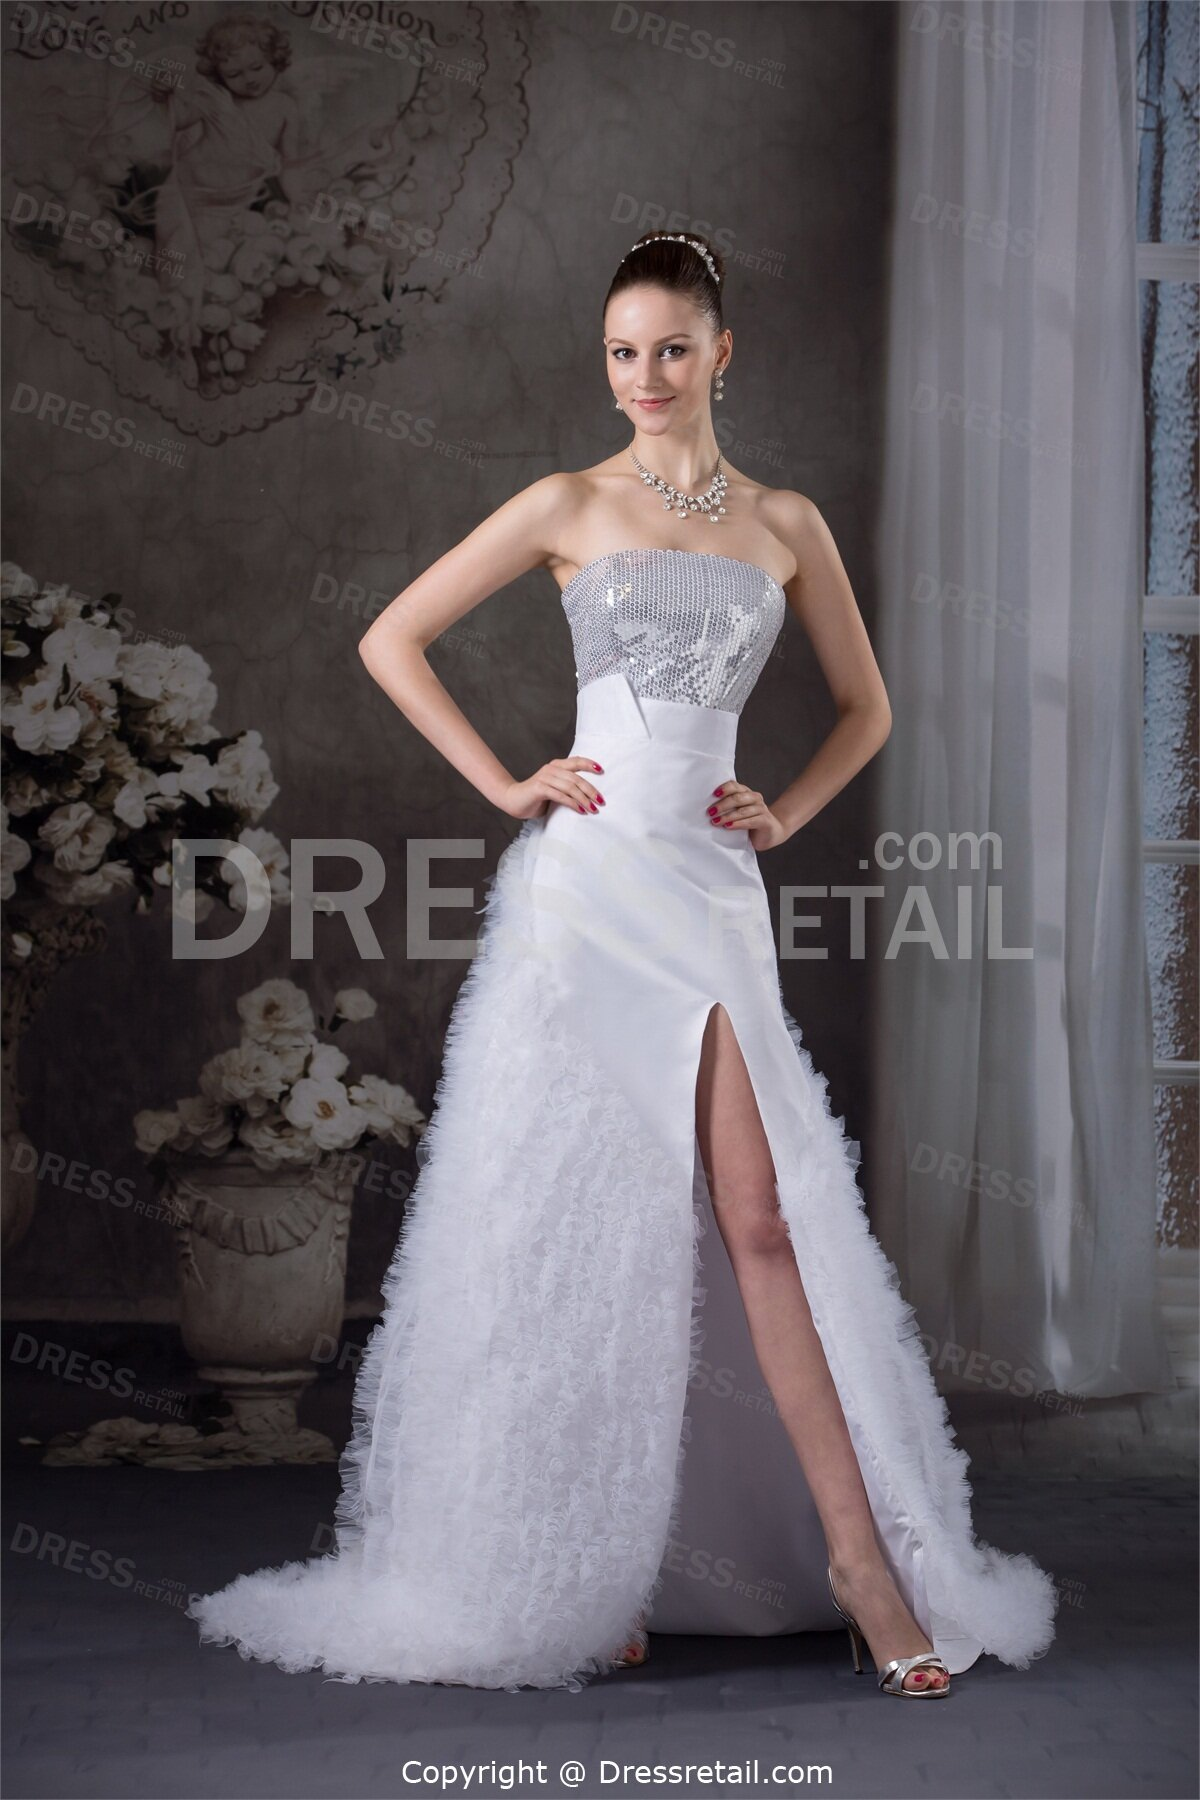 best corset for under wedding dresses pictures ideas guide to buying stylish wedding dresses. Black Bedroom Furniture Sets. Home Design Ideas